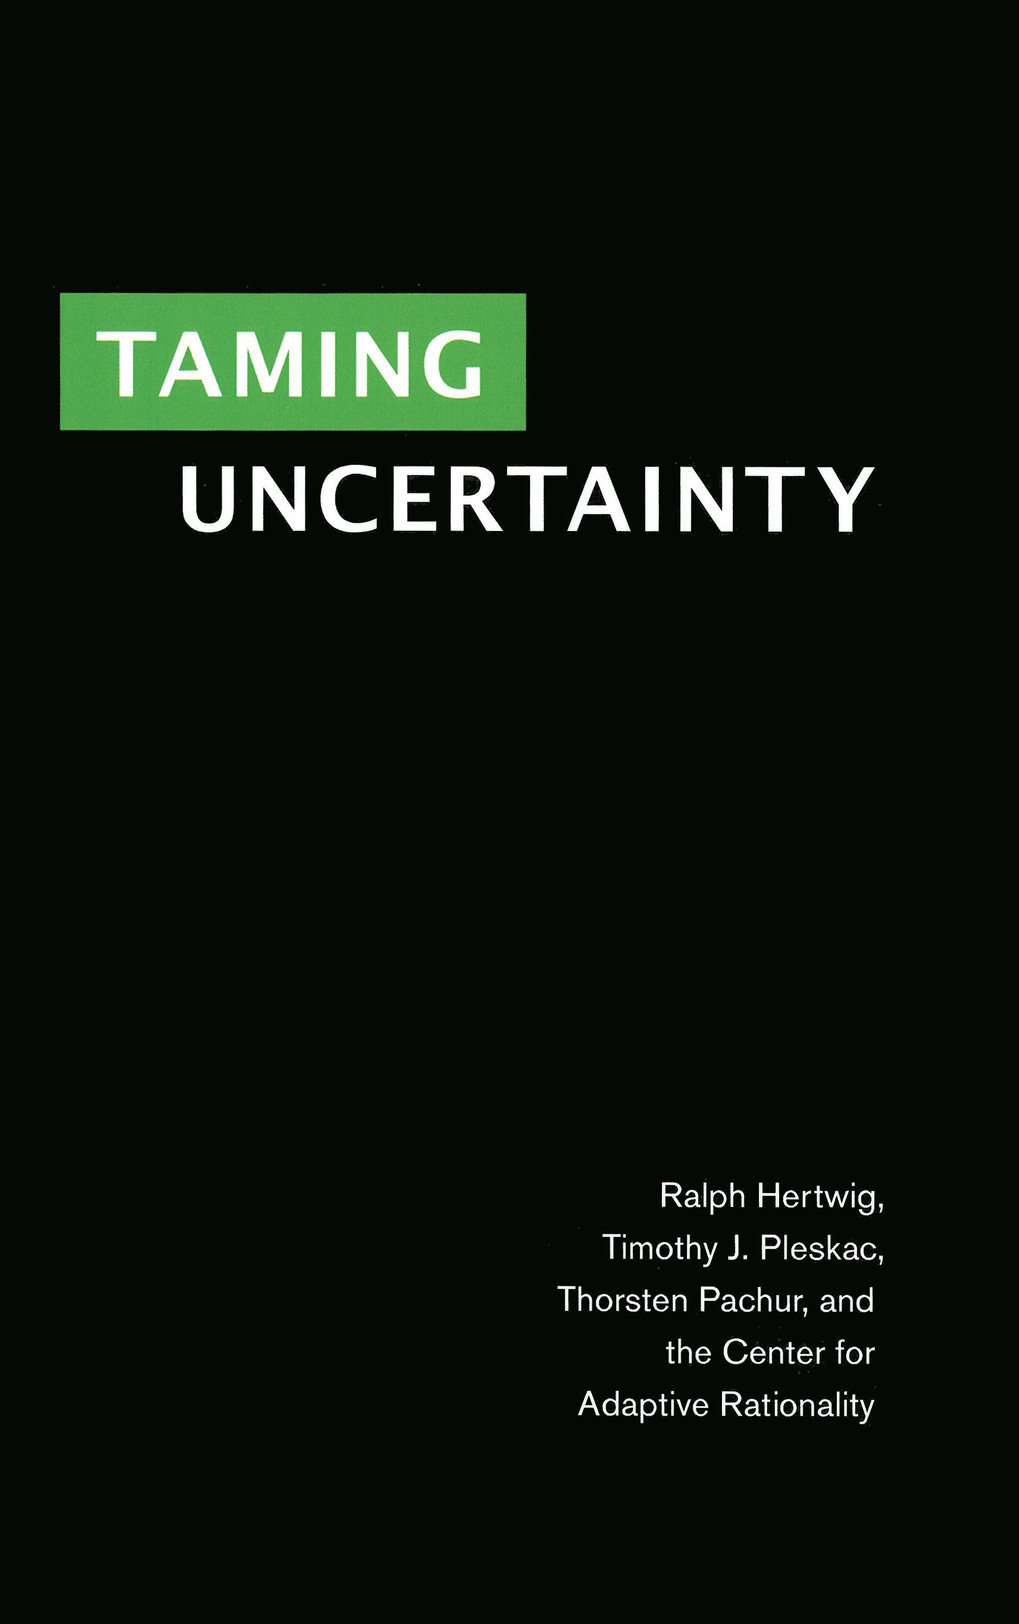 <strong>Taming uncertainty</strong>